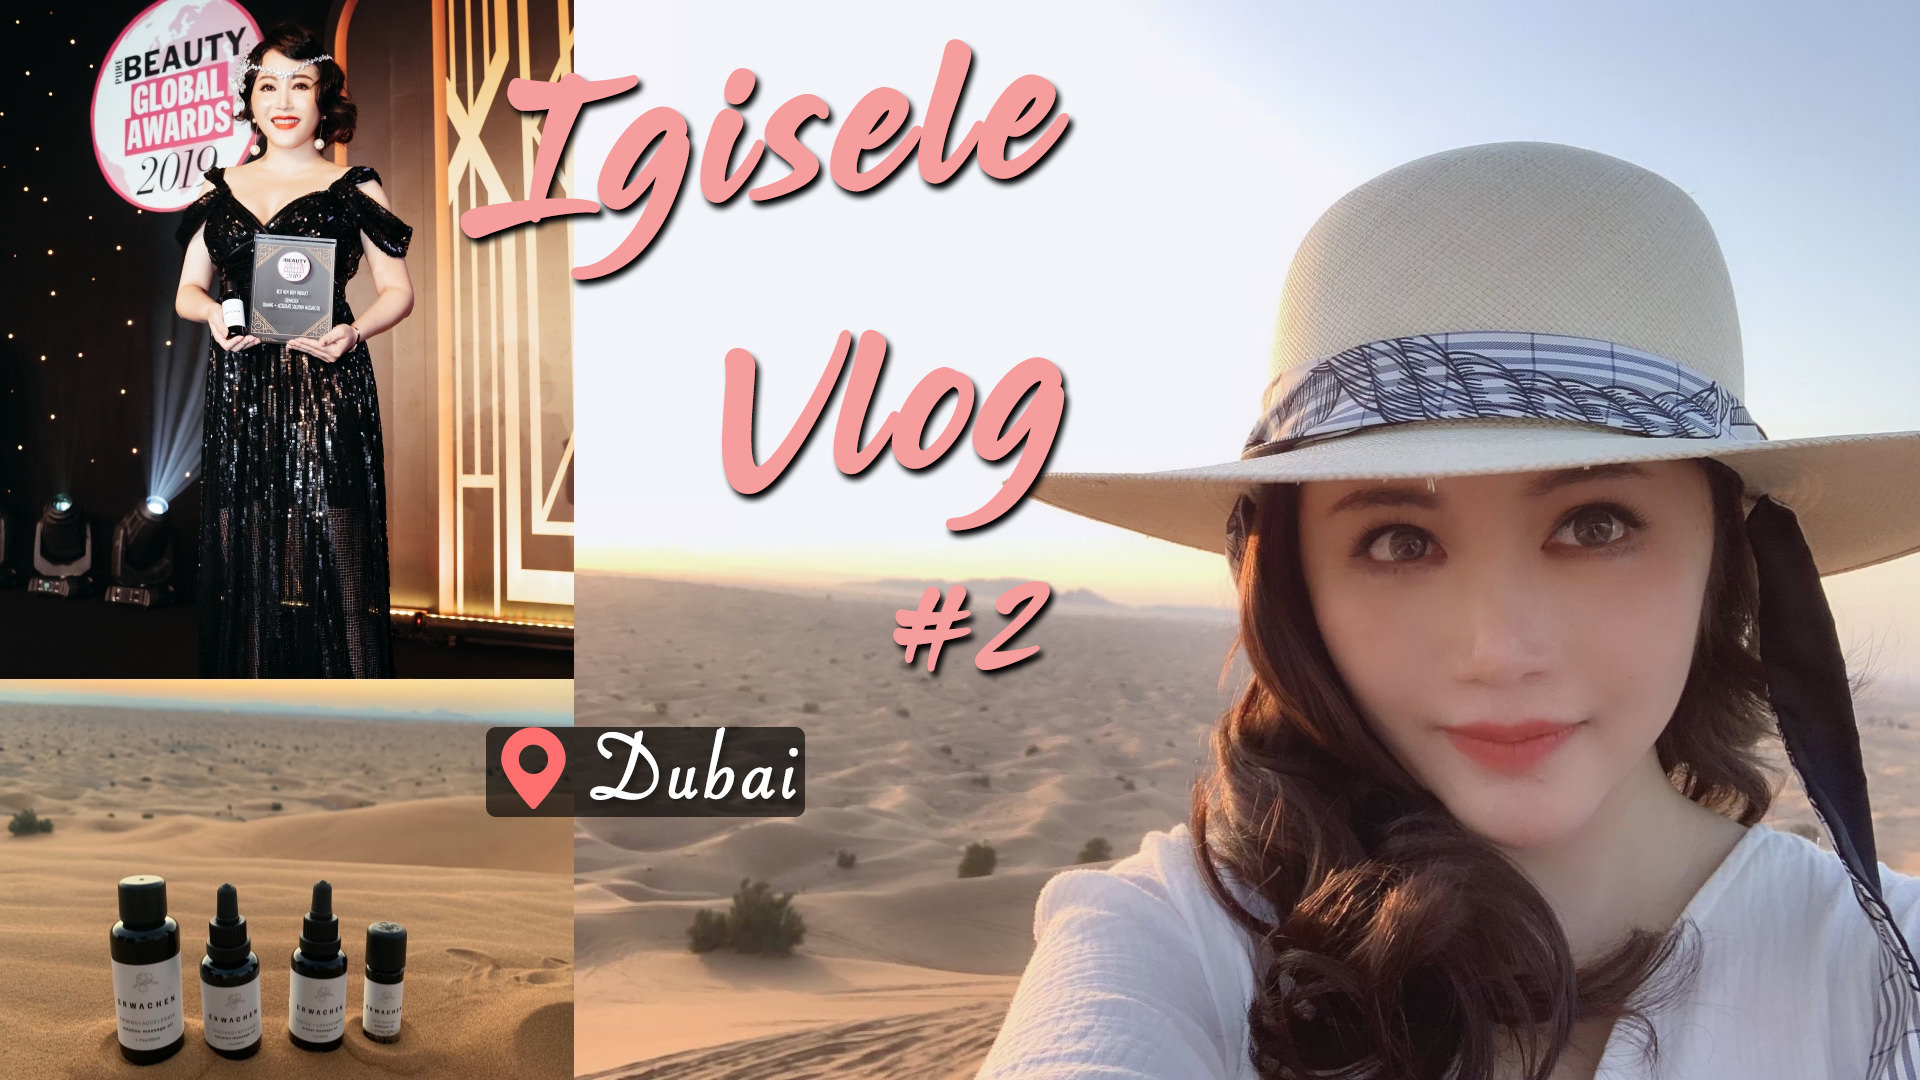 [YOUTUBE] IGisele vlog #2 小吉的杜拜 Pure Beauty Global Awards 2019領獎之旅 (下集)